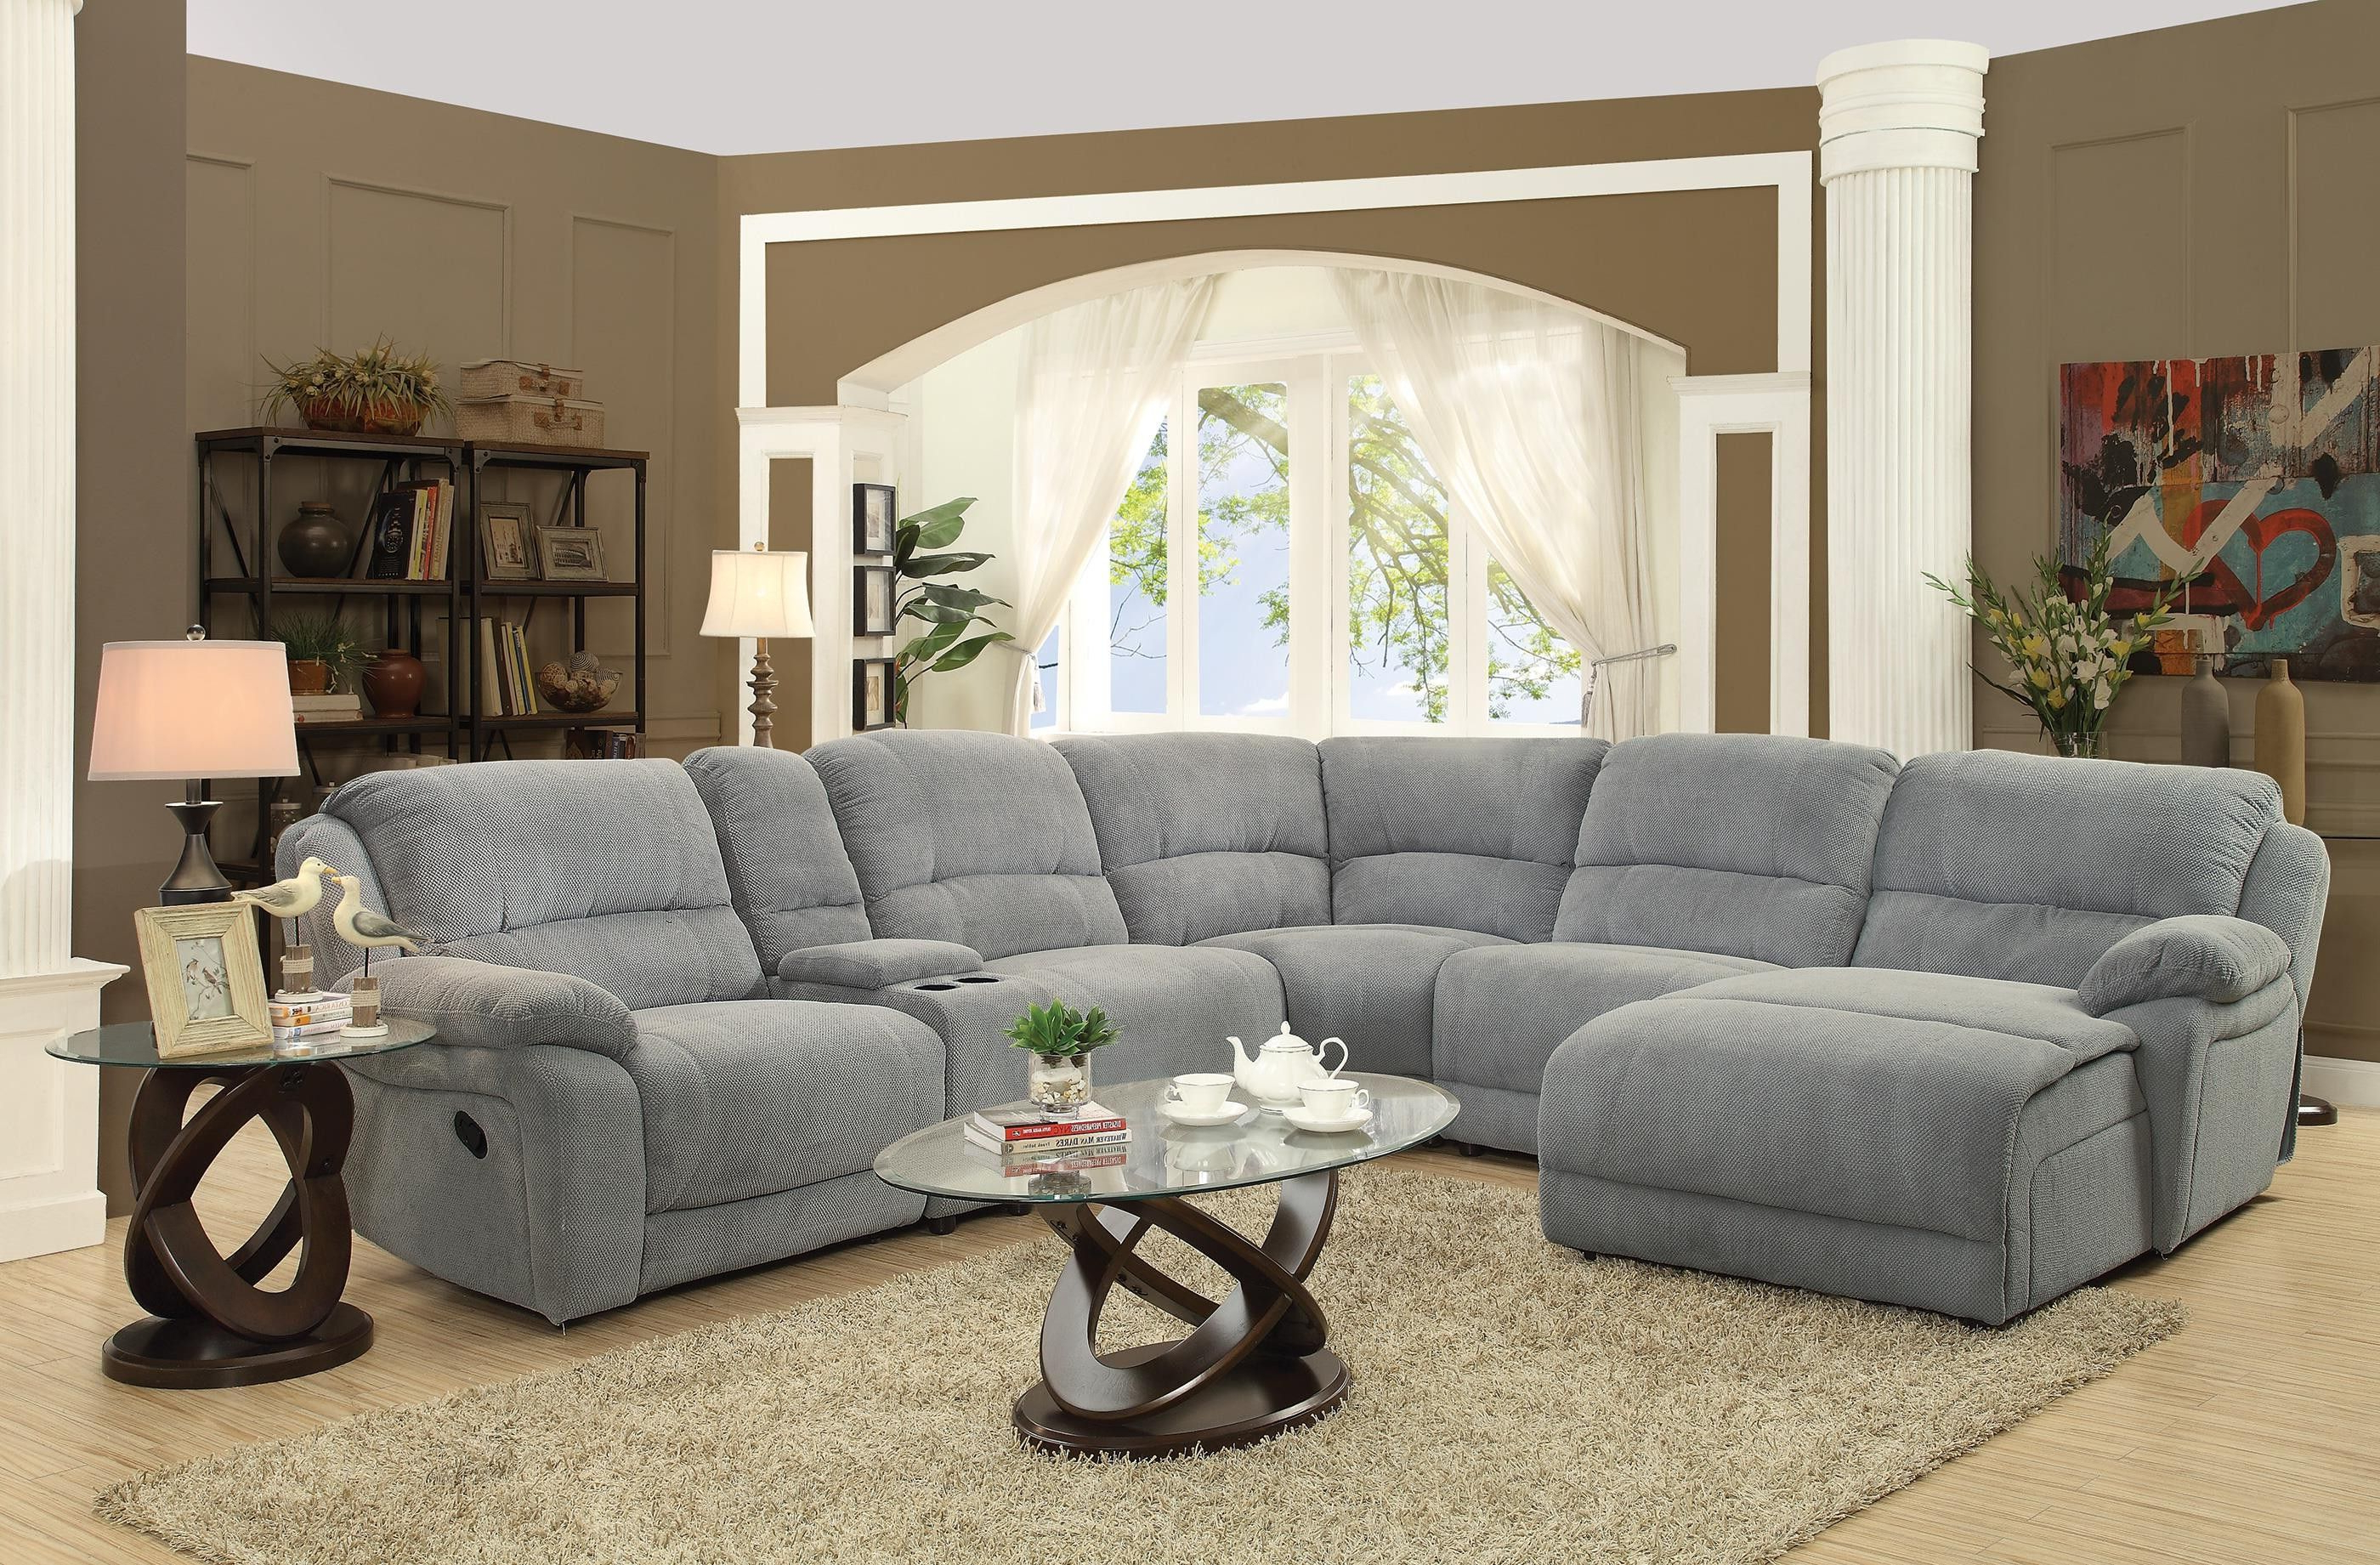 Latest 6 Piece Reclining Sectional Sofa (View 7 of 20)